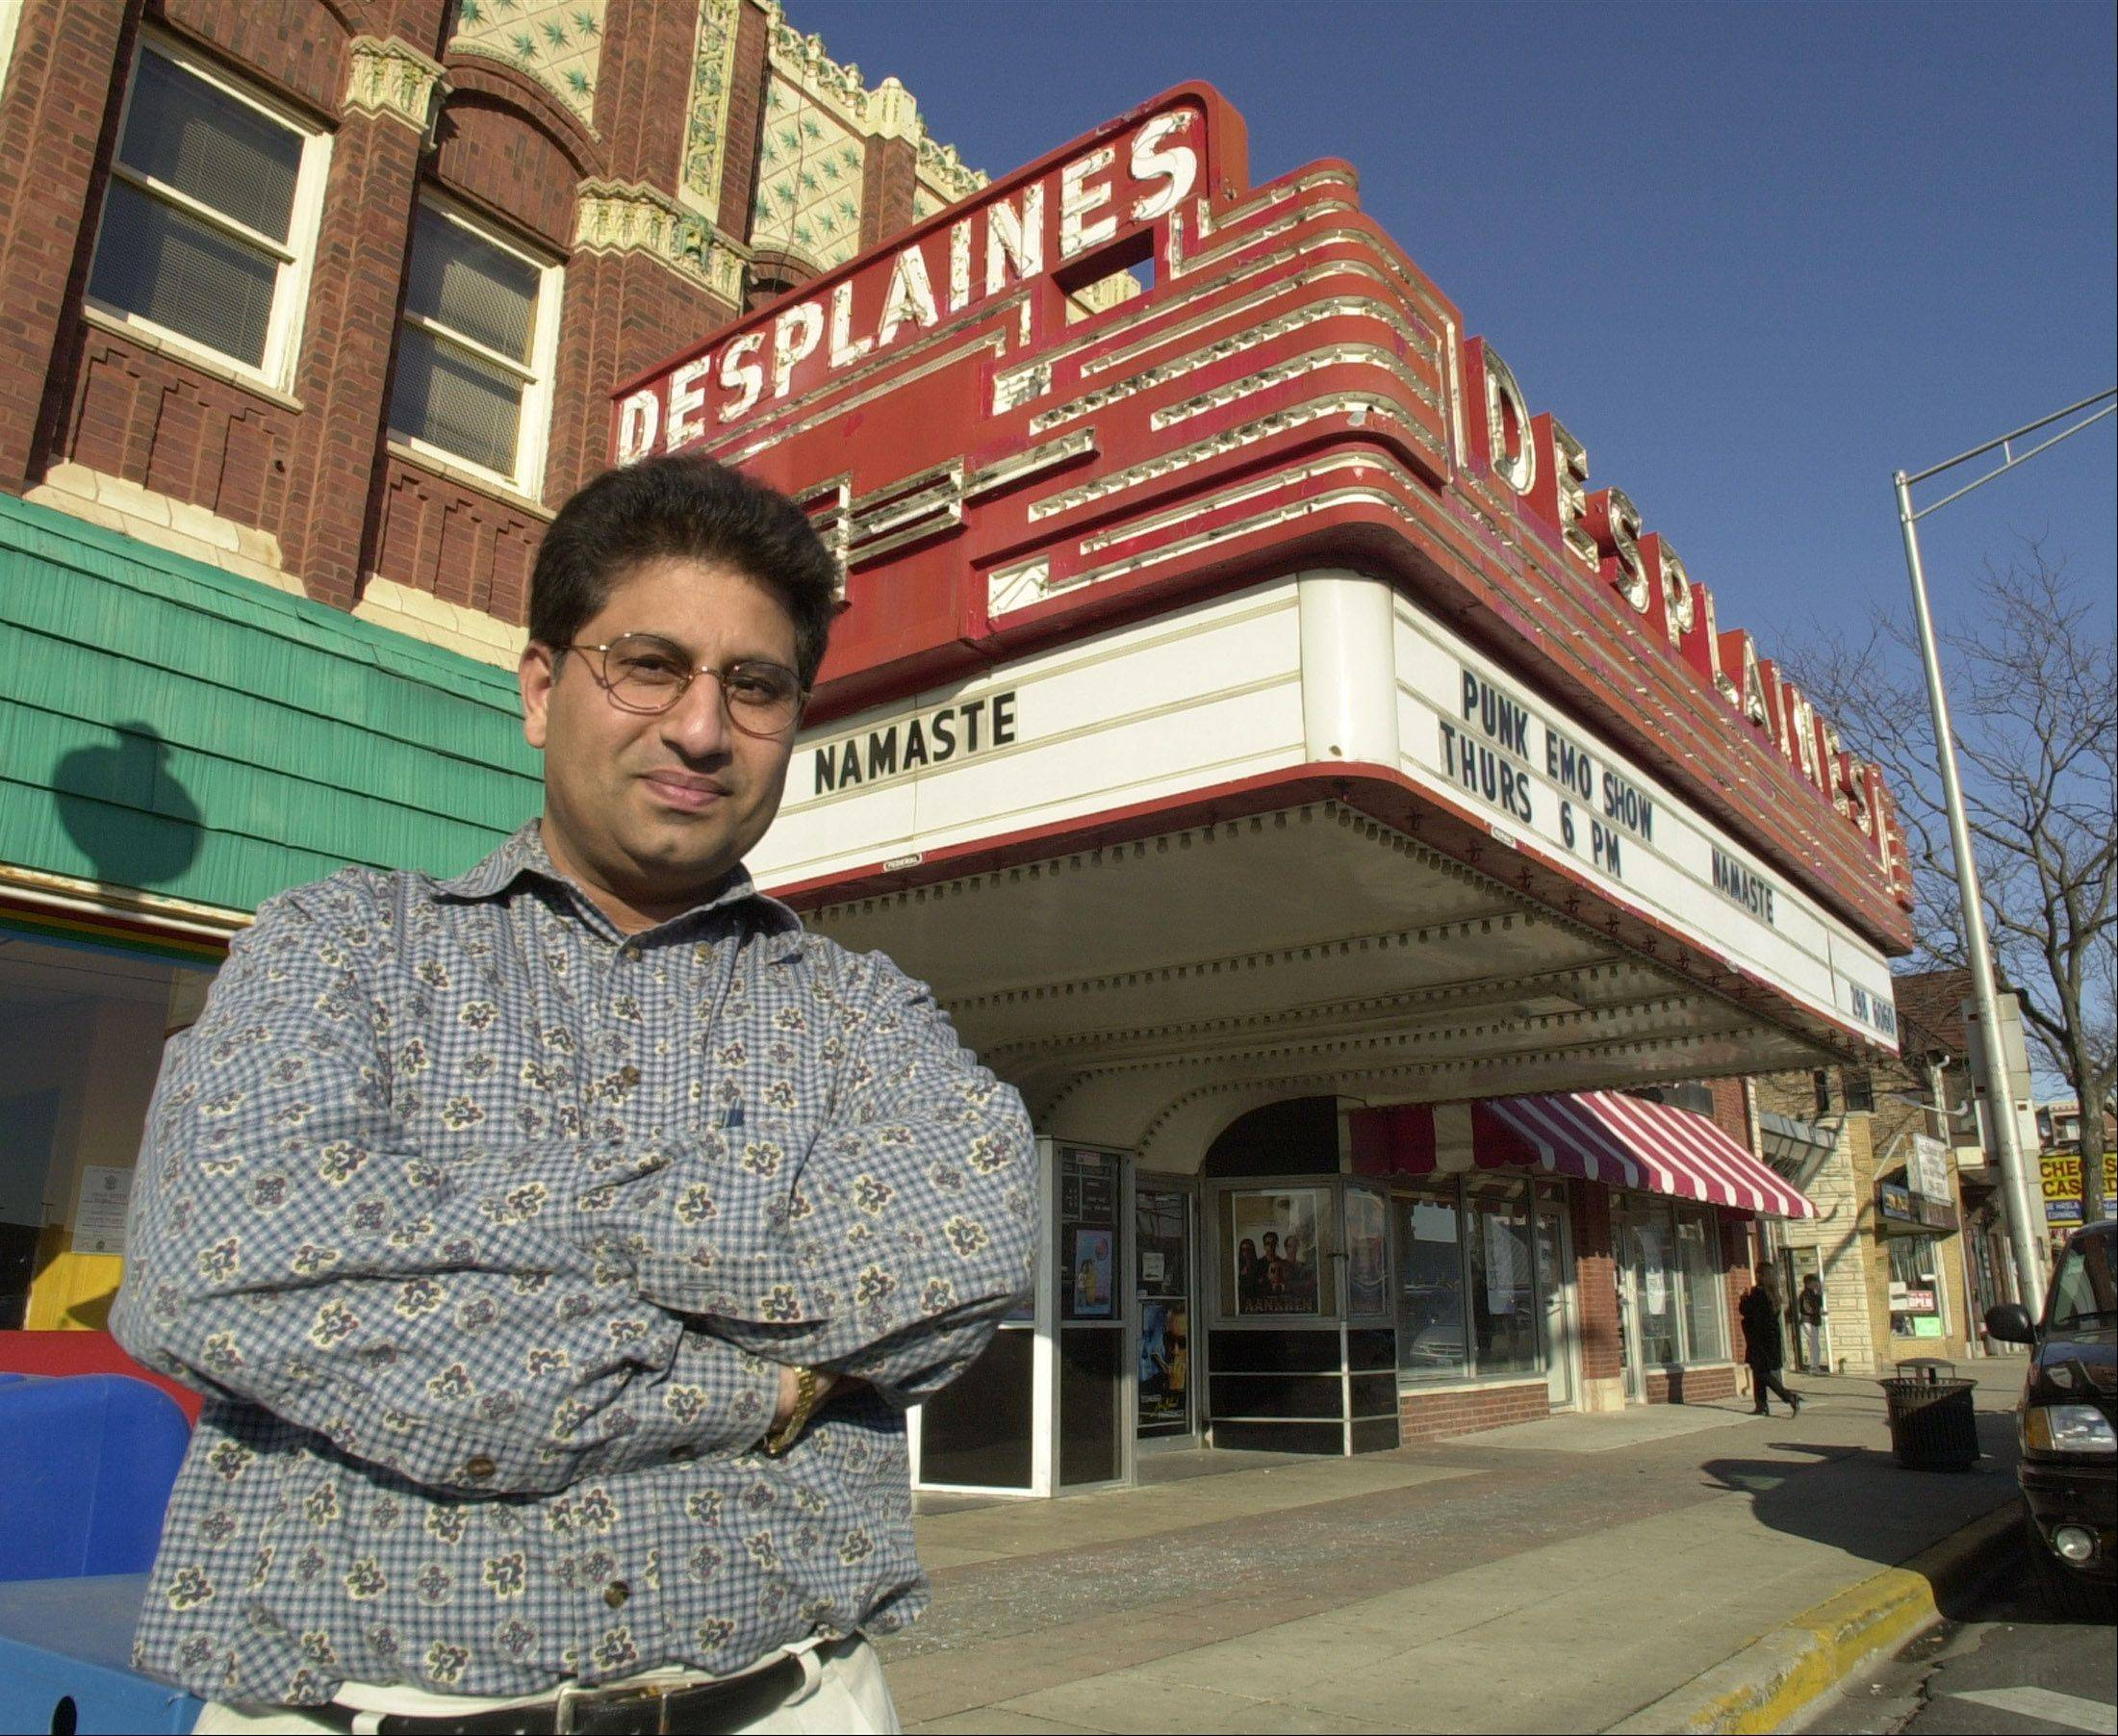 Des Plaines Theatre to reopen Saturday